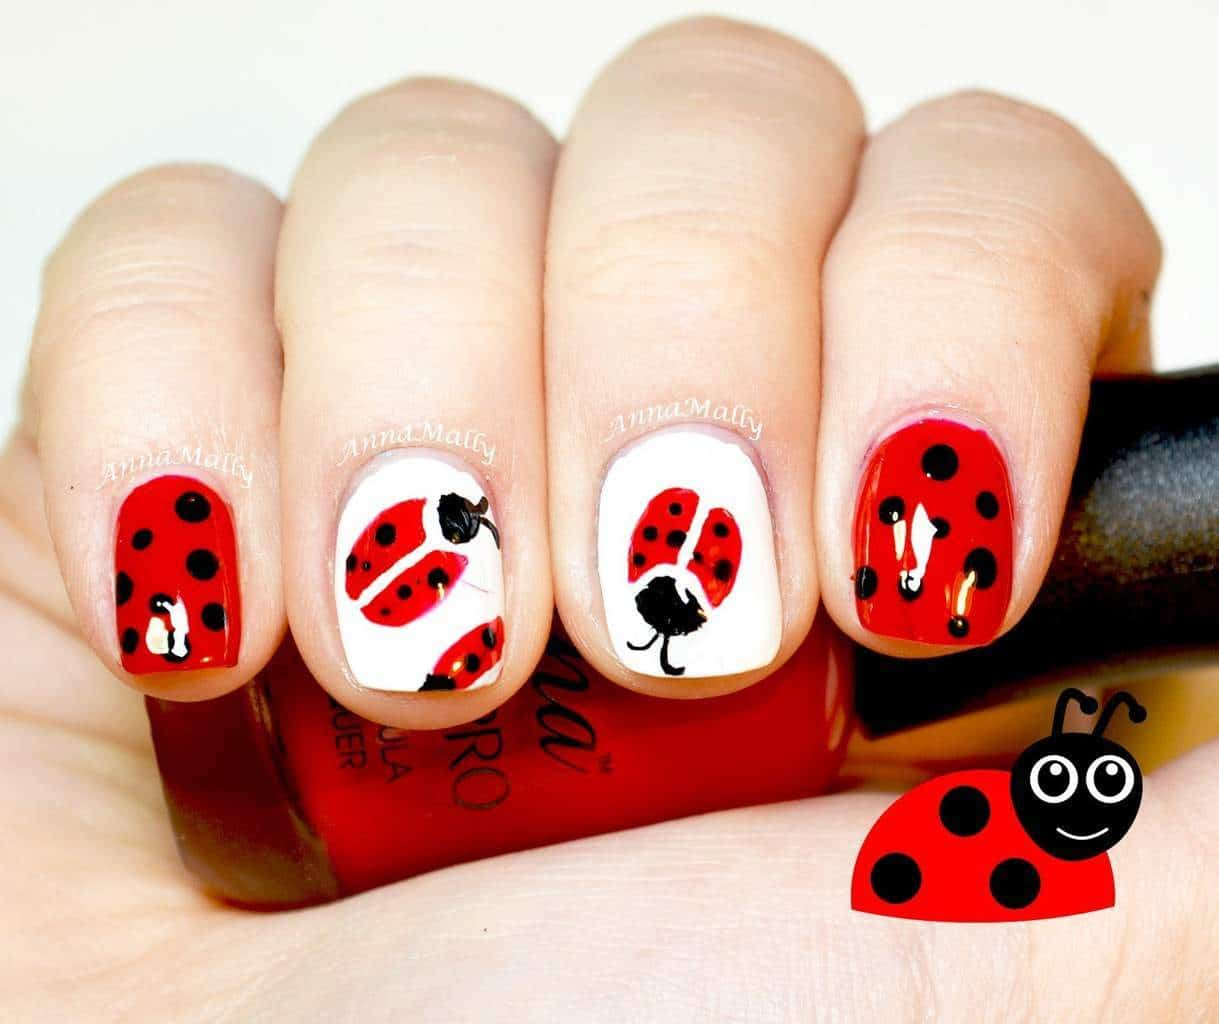 Red color nail with animal print